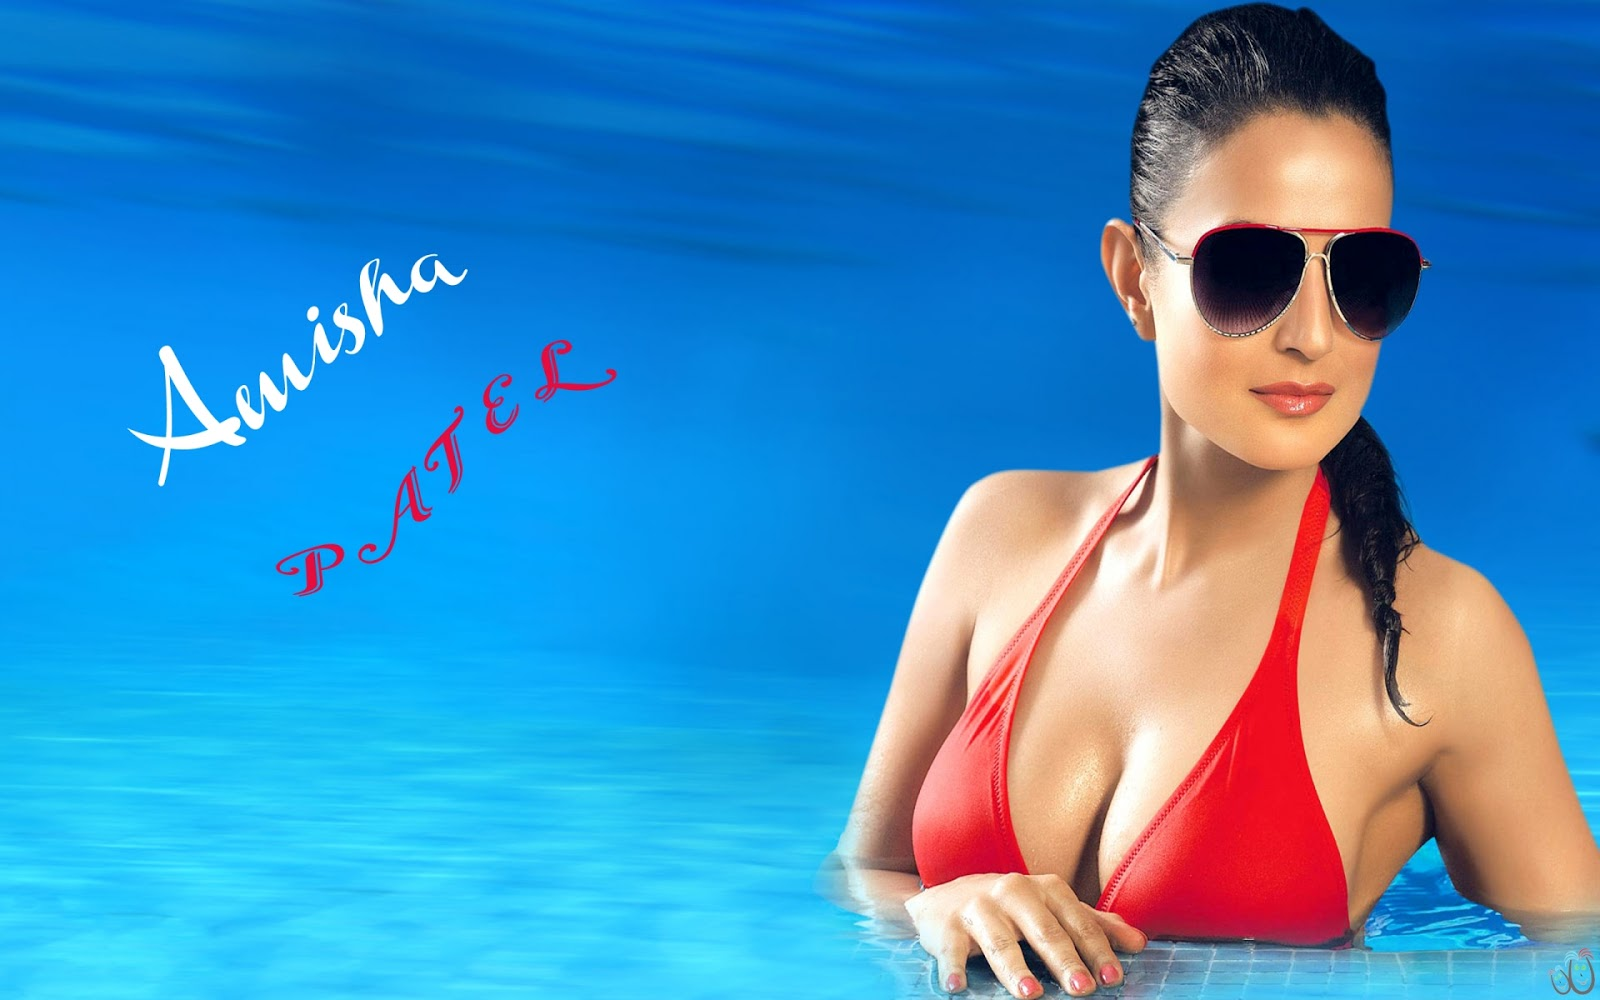 Ameesha patel hot hd images, bikini pictures latest photo gallery